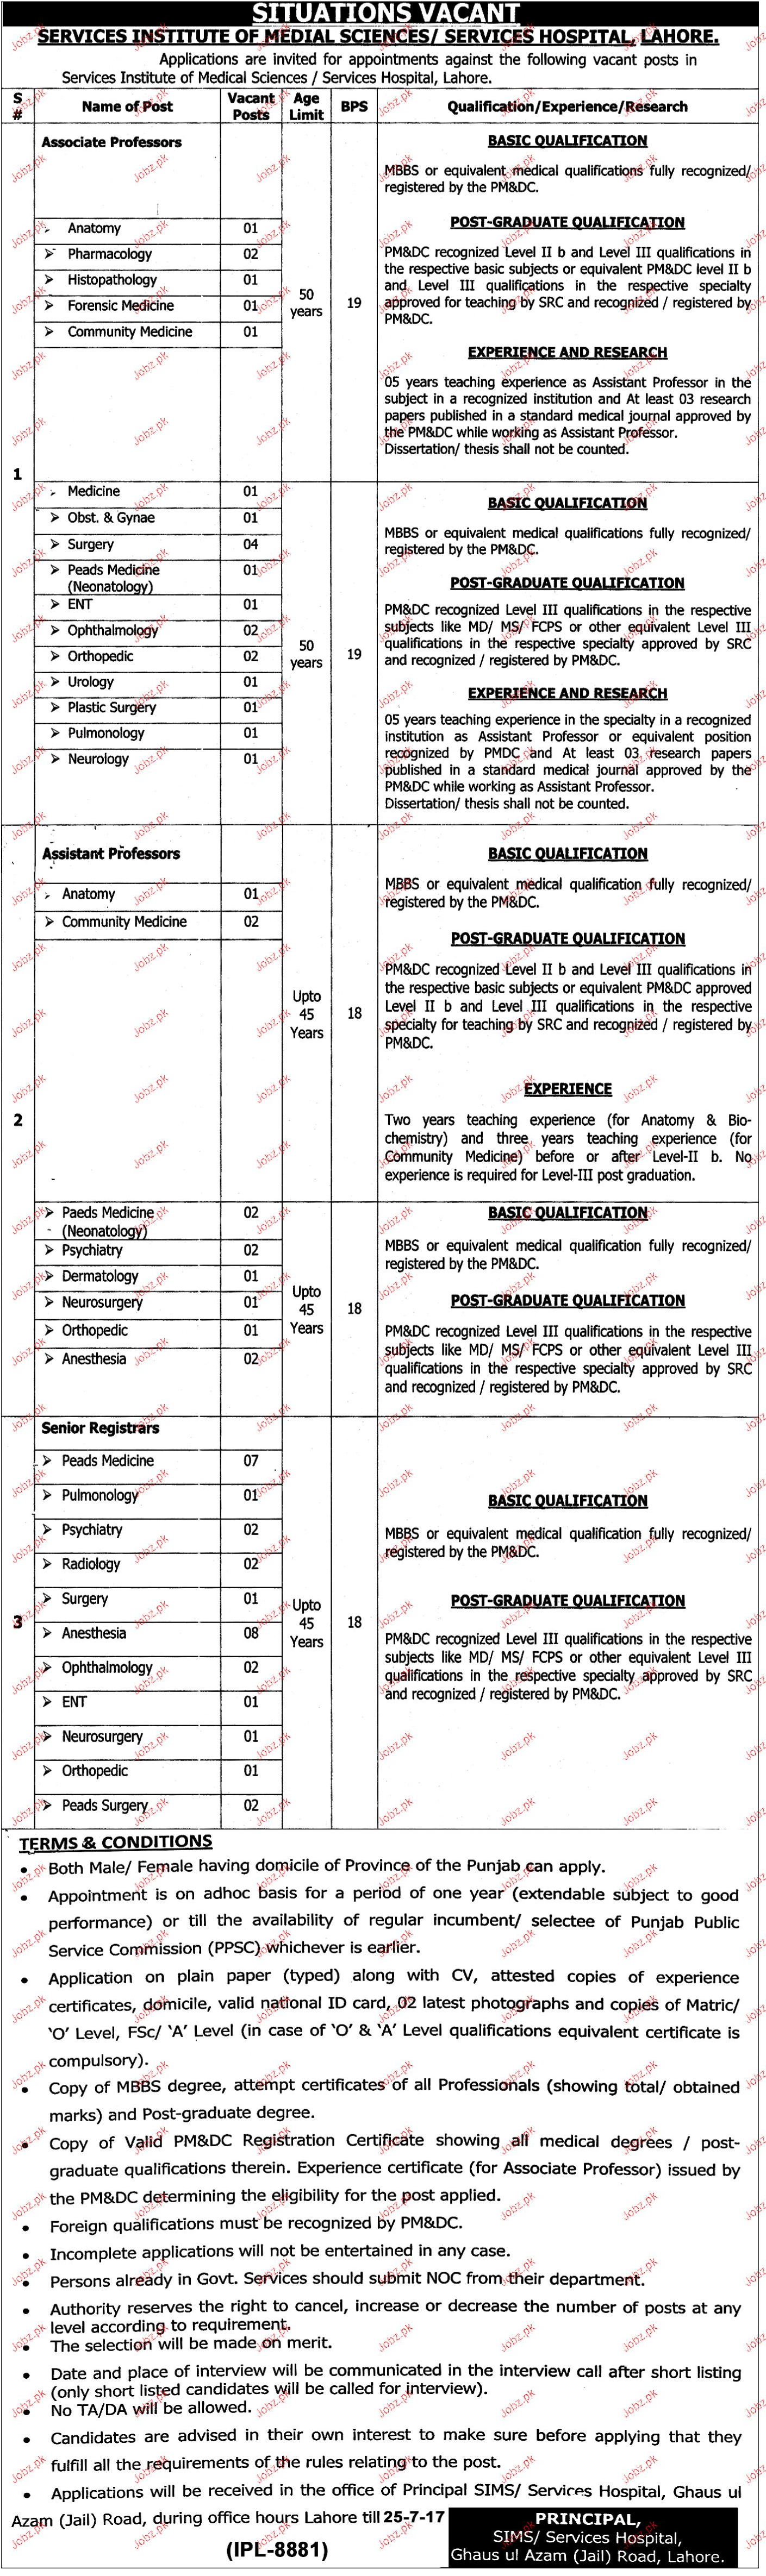 Service Institute of Medical Sciences Jobs Open